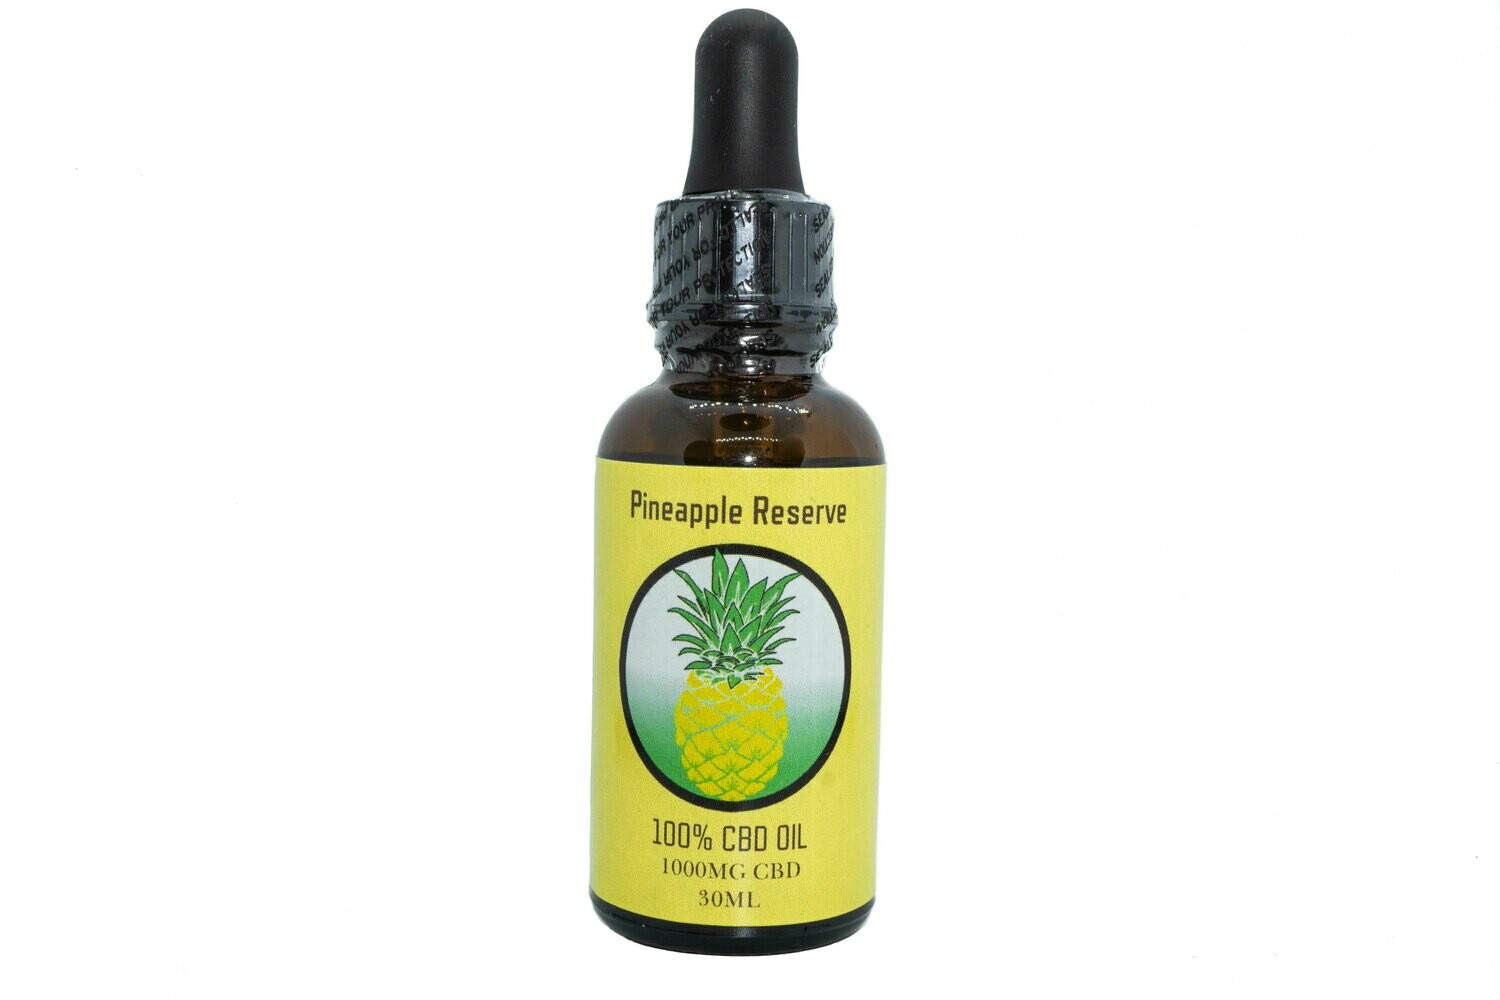 (1000mg/2000mg) CBD Tincture By Pineapple Reserve